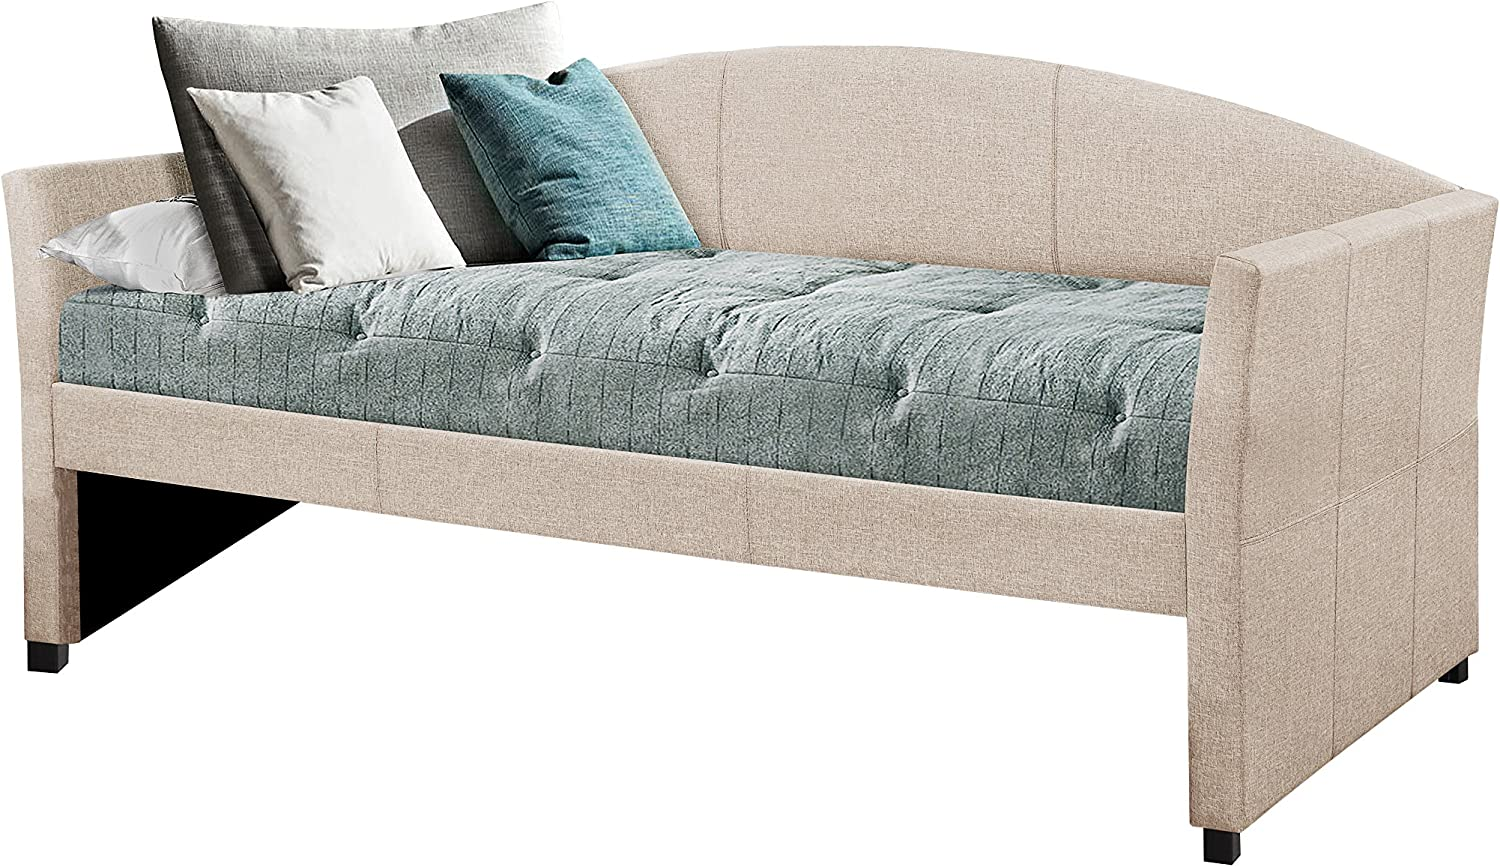 Hillsdale Furniture Westchester Daybed, Twin, Fog Fabric